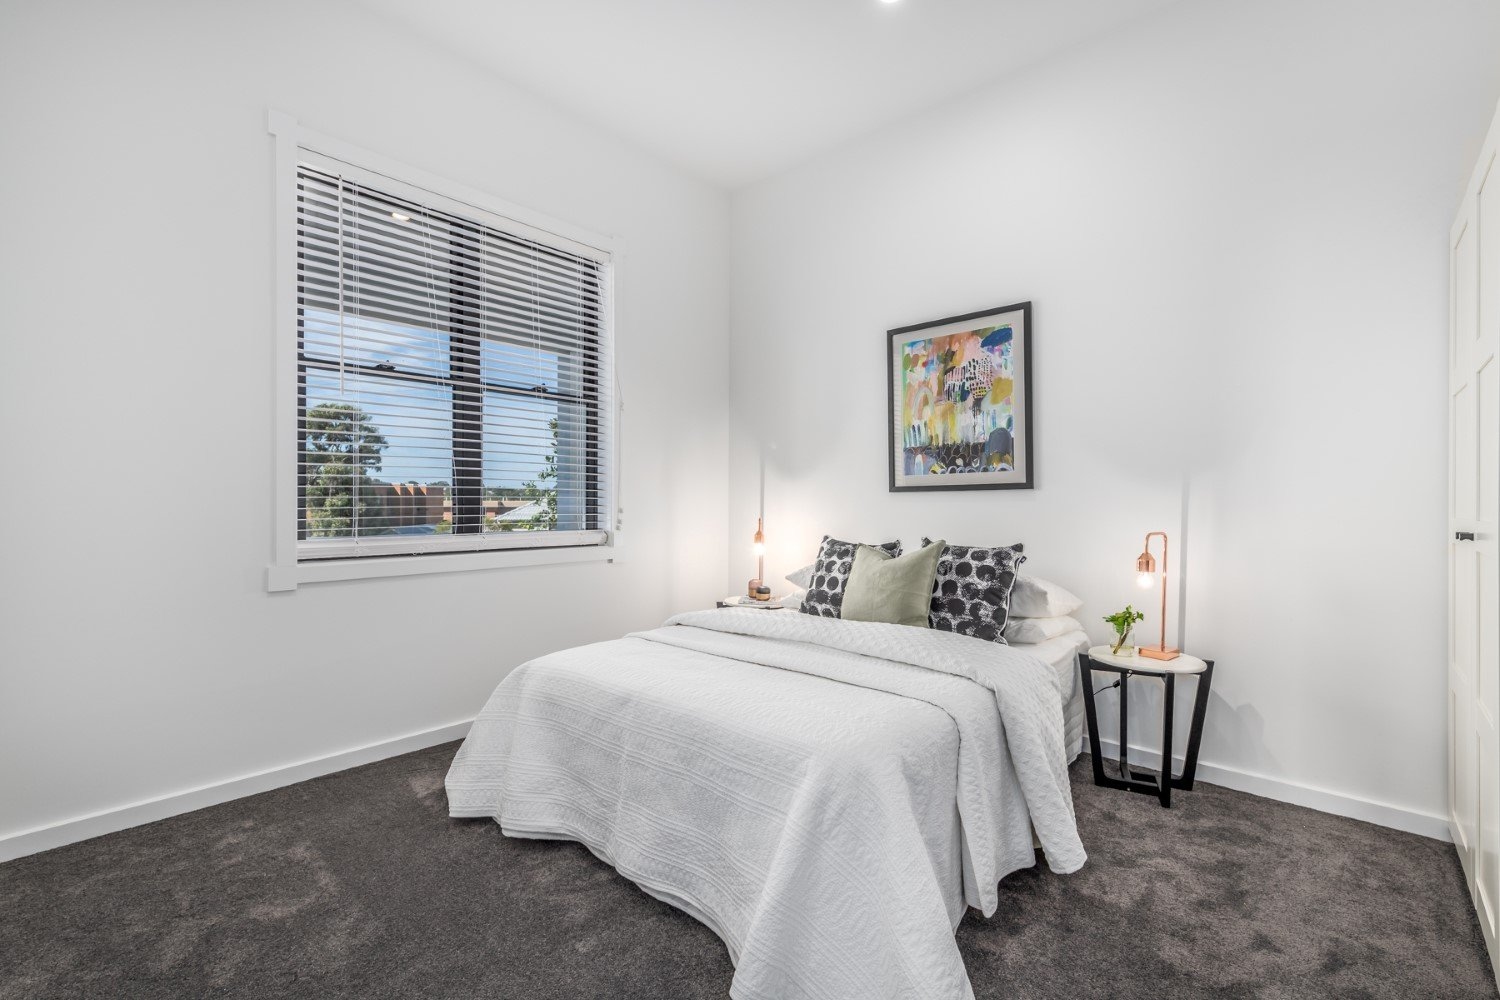 Renovated Family Home | New Lambton - https://www.peonyandsilk.com.au/wp-content/uploads/2019/02/Peony-and-Silk-Renovated-Family-Home-New-Lambton-7.jpg